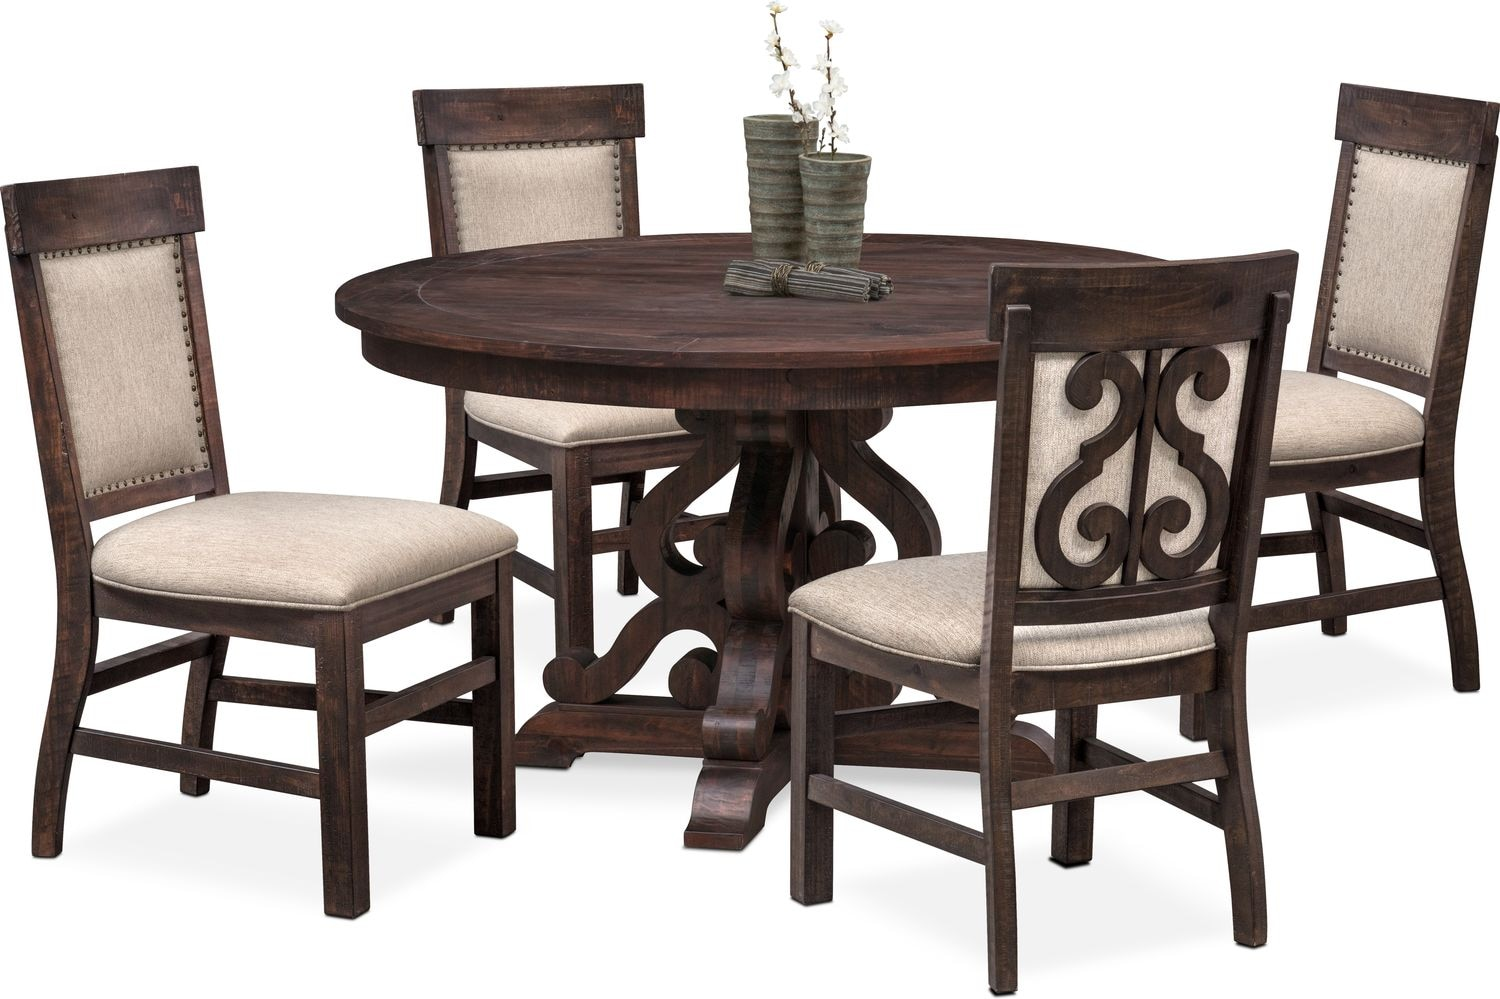 7dcefe95298ef ... Dining Room Furniture - Charthouse Round Dining Table and 4 Upholstered  Side Chairs